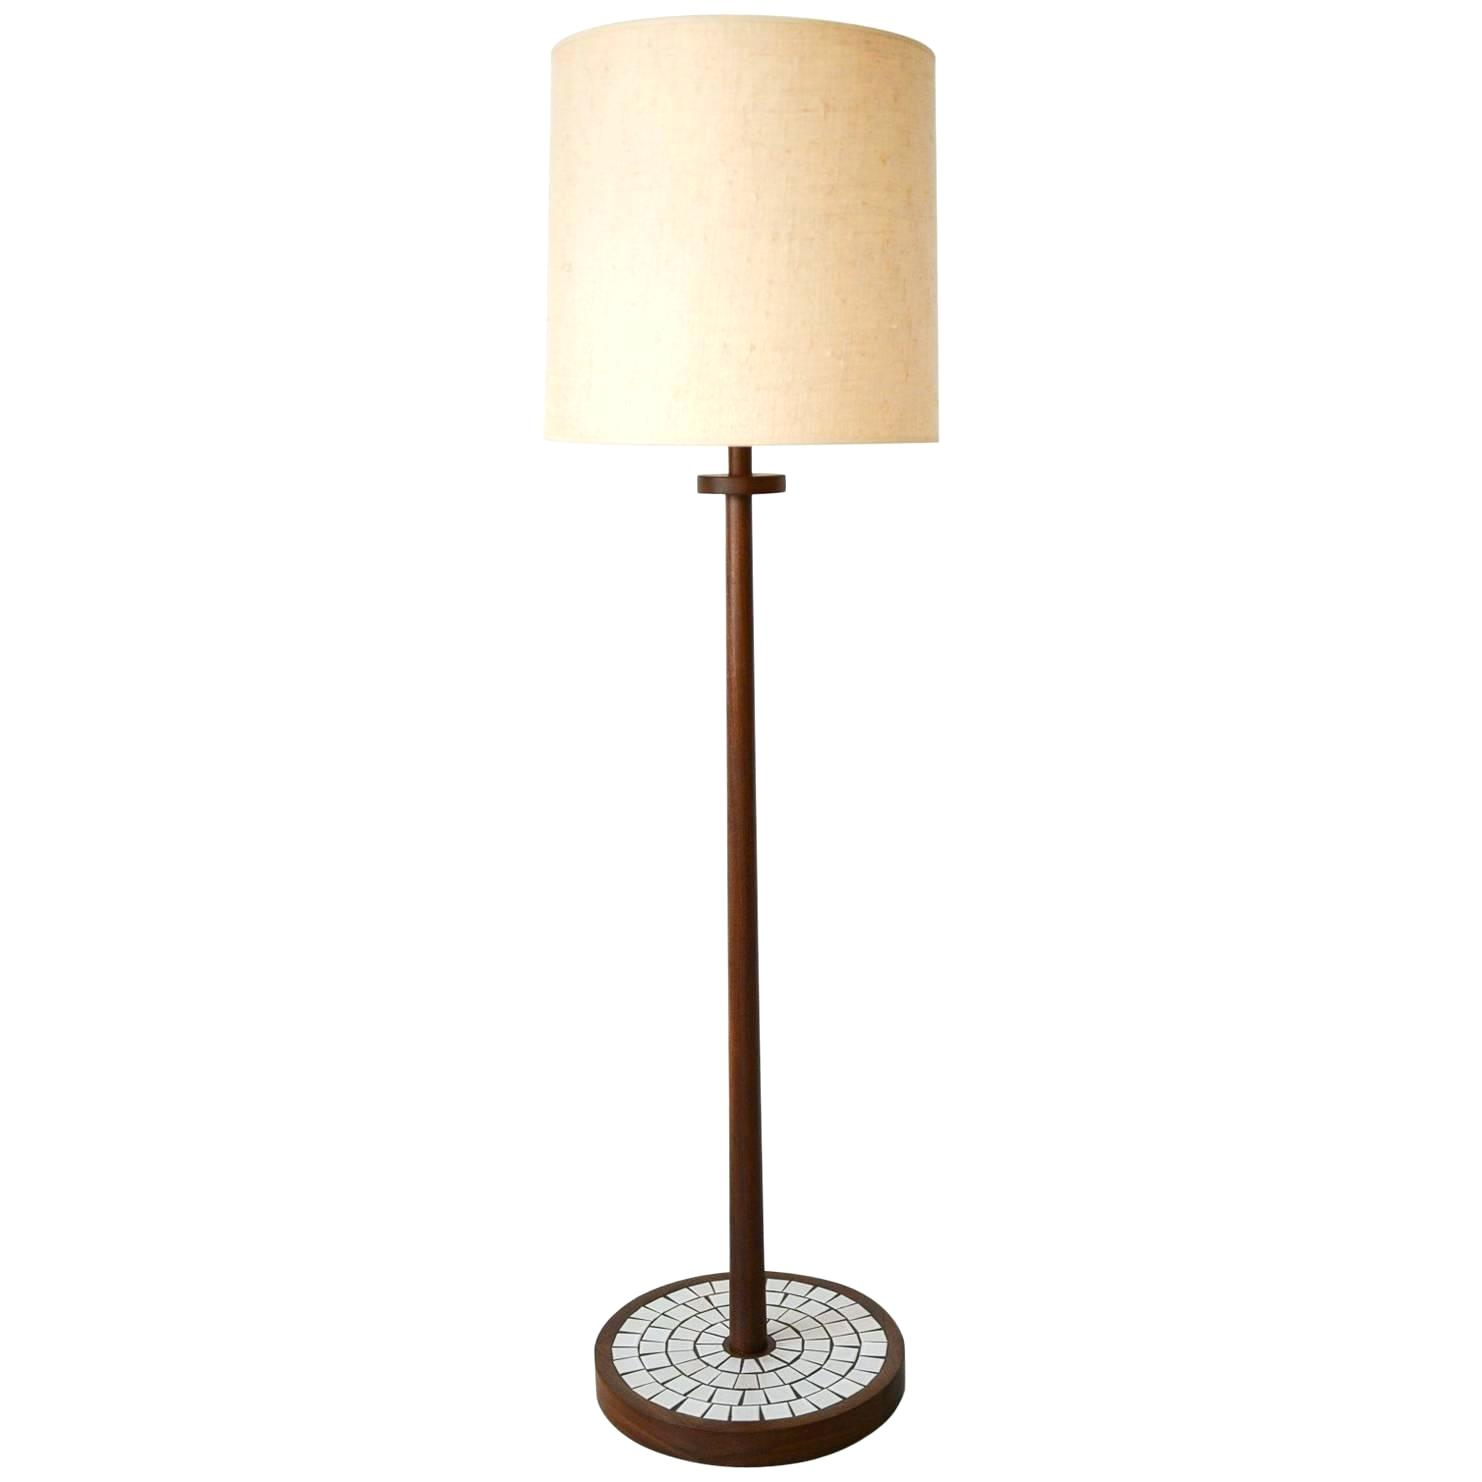 marshall table lamp our living room marshalls walnut floor and studios circa for dale tiffany accent lamps office cupboard grey wood dining high end designer steel desk legs